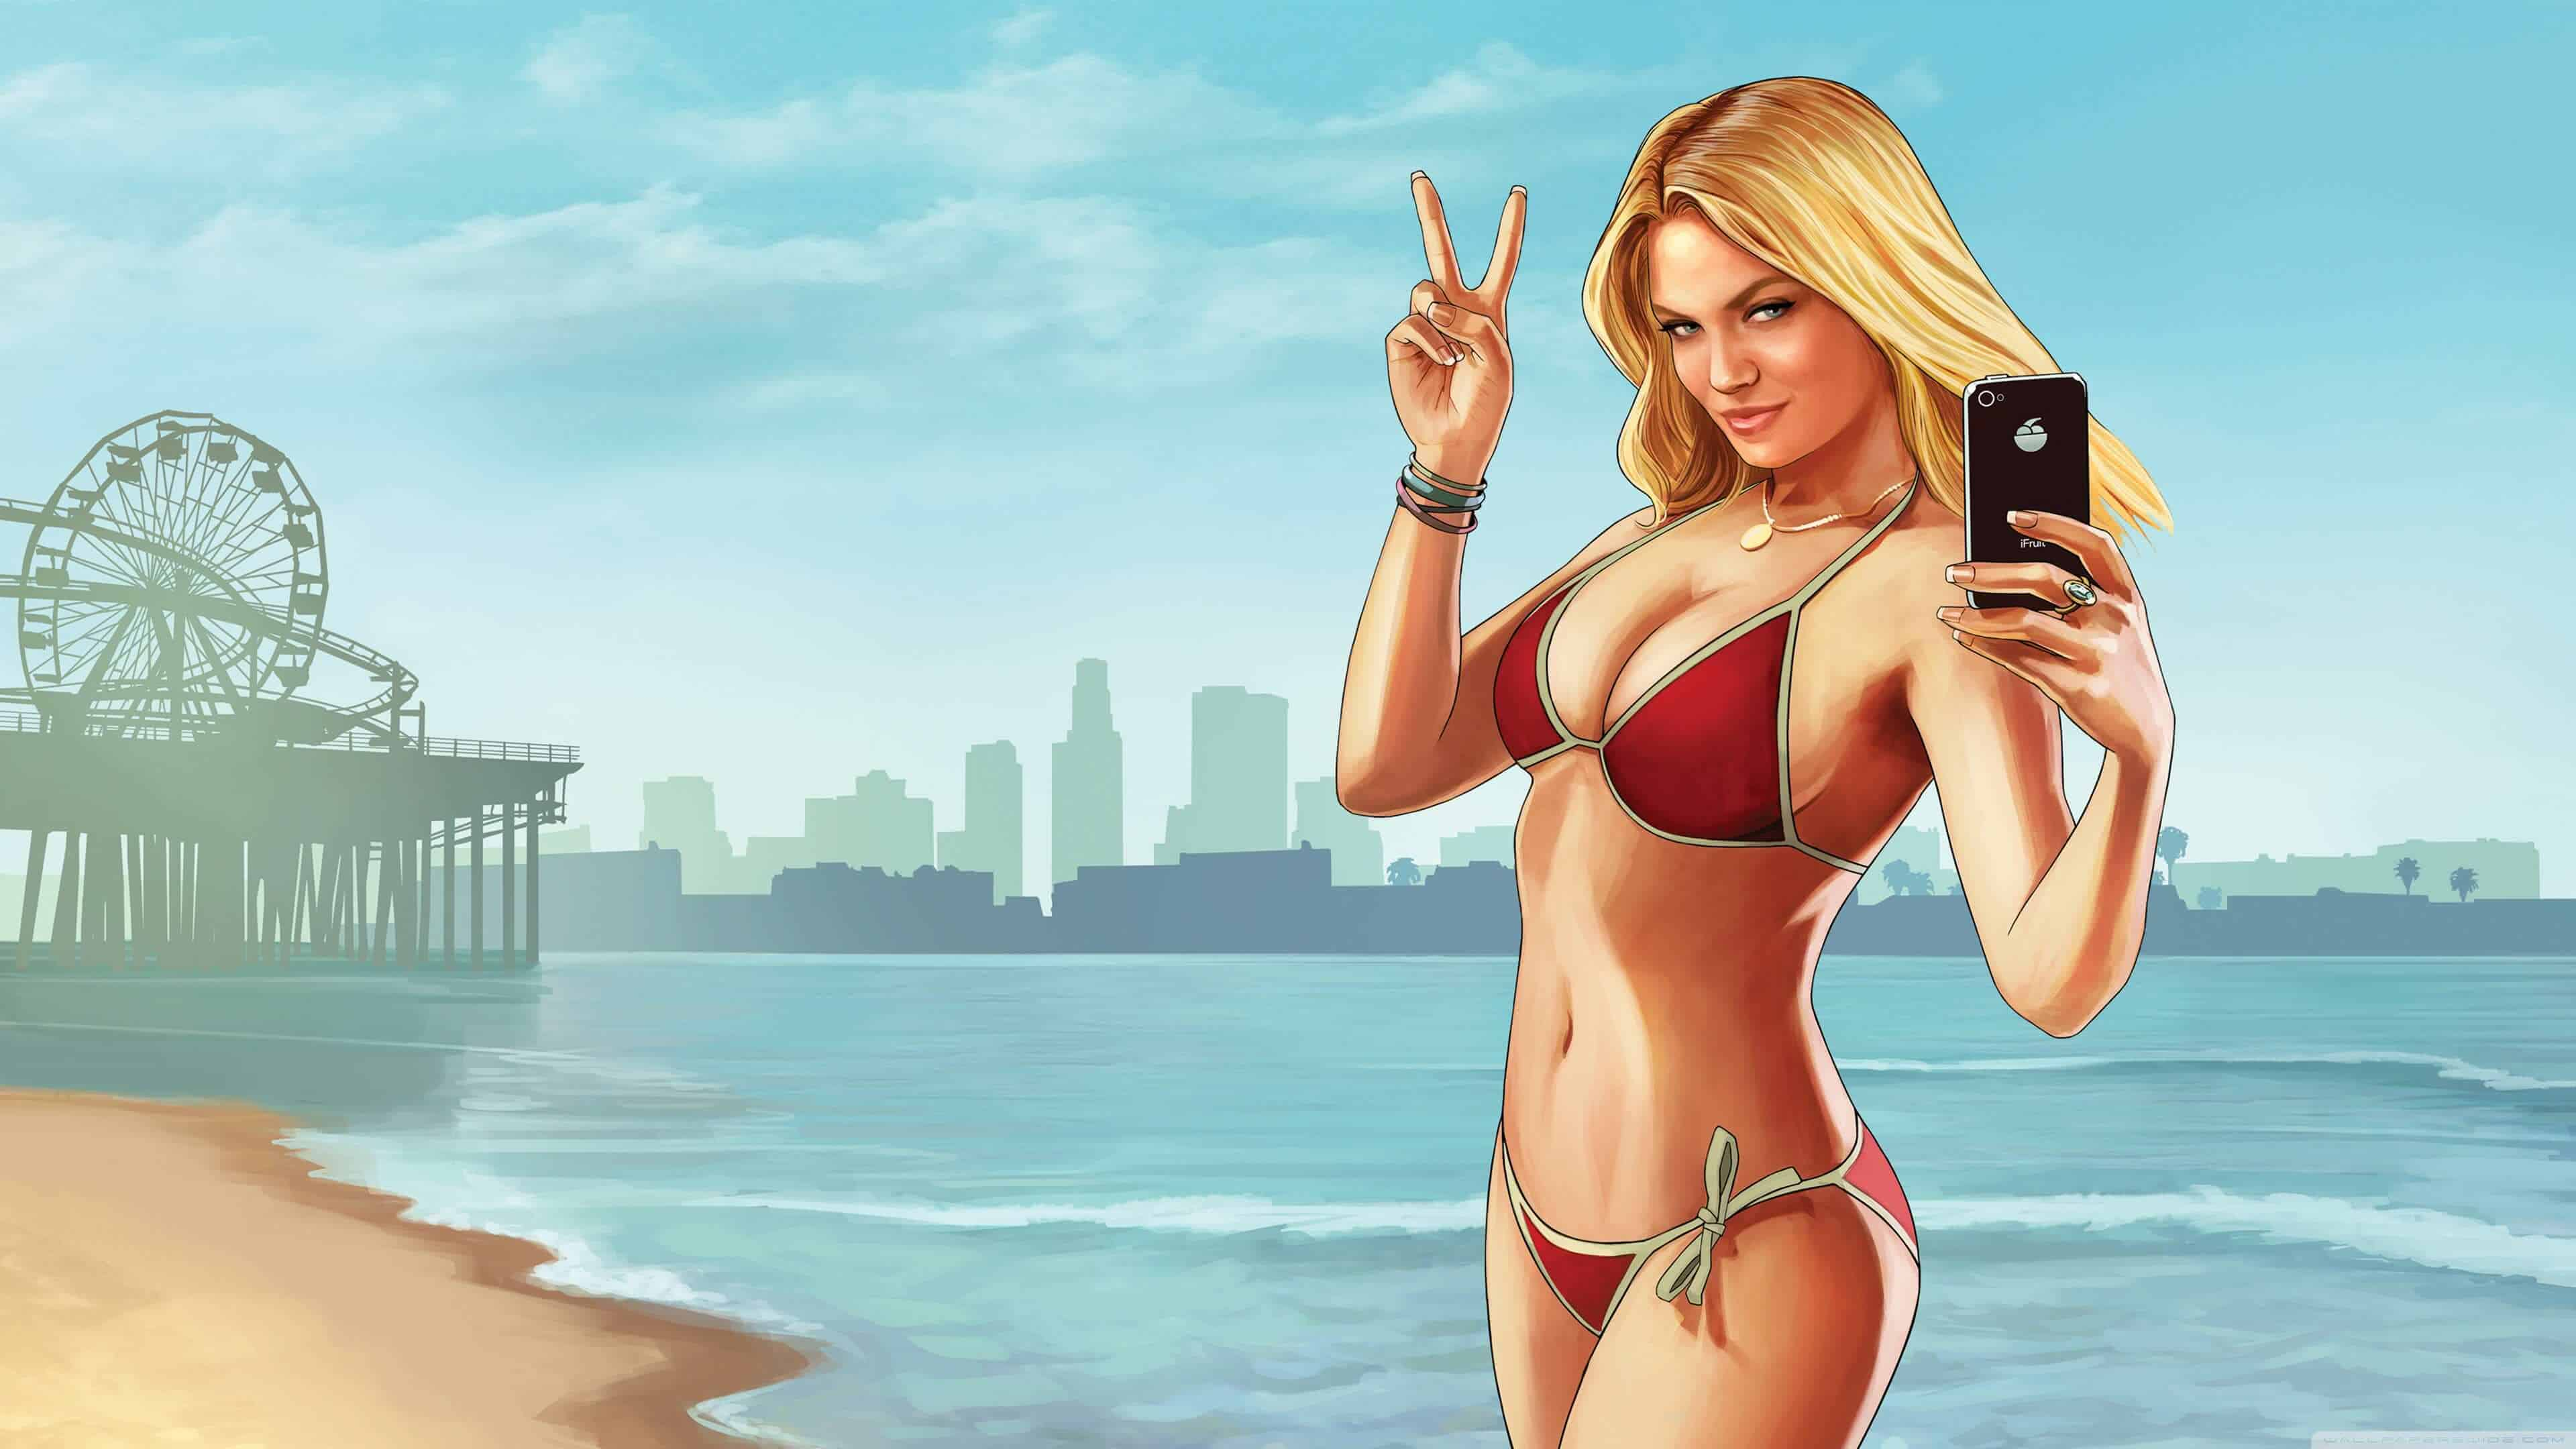 Grand Theft Auto 5 Bikini Model UHD 4K Wallpaper Pixelz 3840x2160